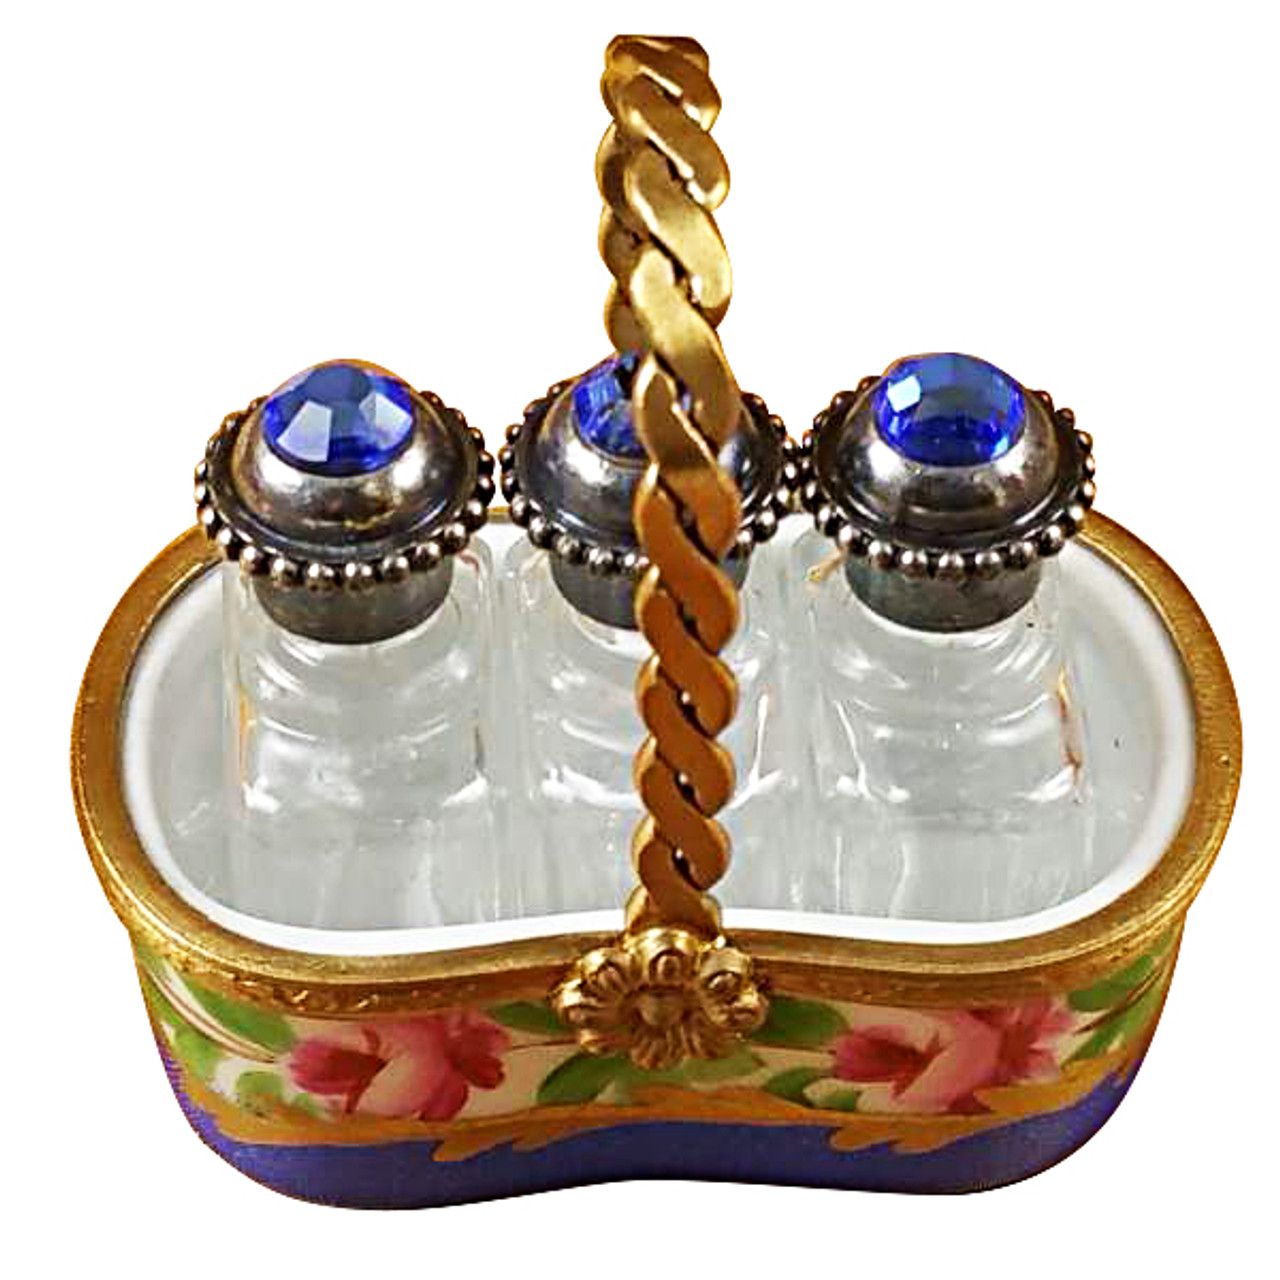 Basket W/Three Perfume Bottles Rochard Limoges Box